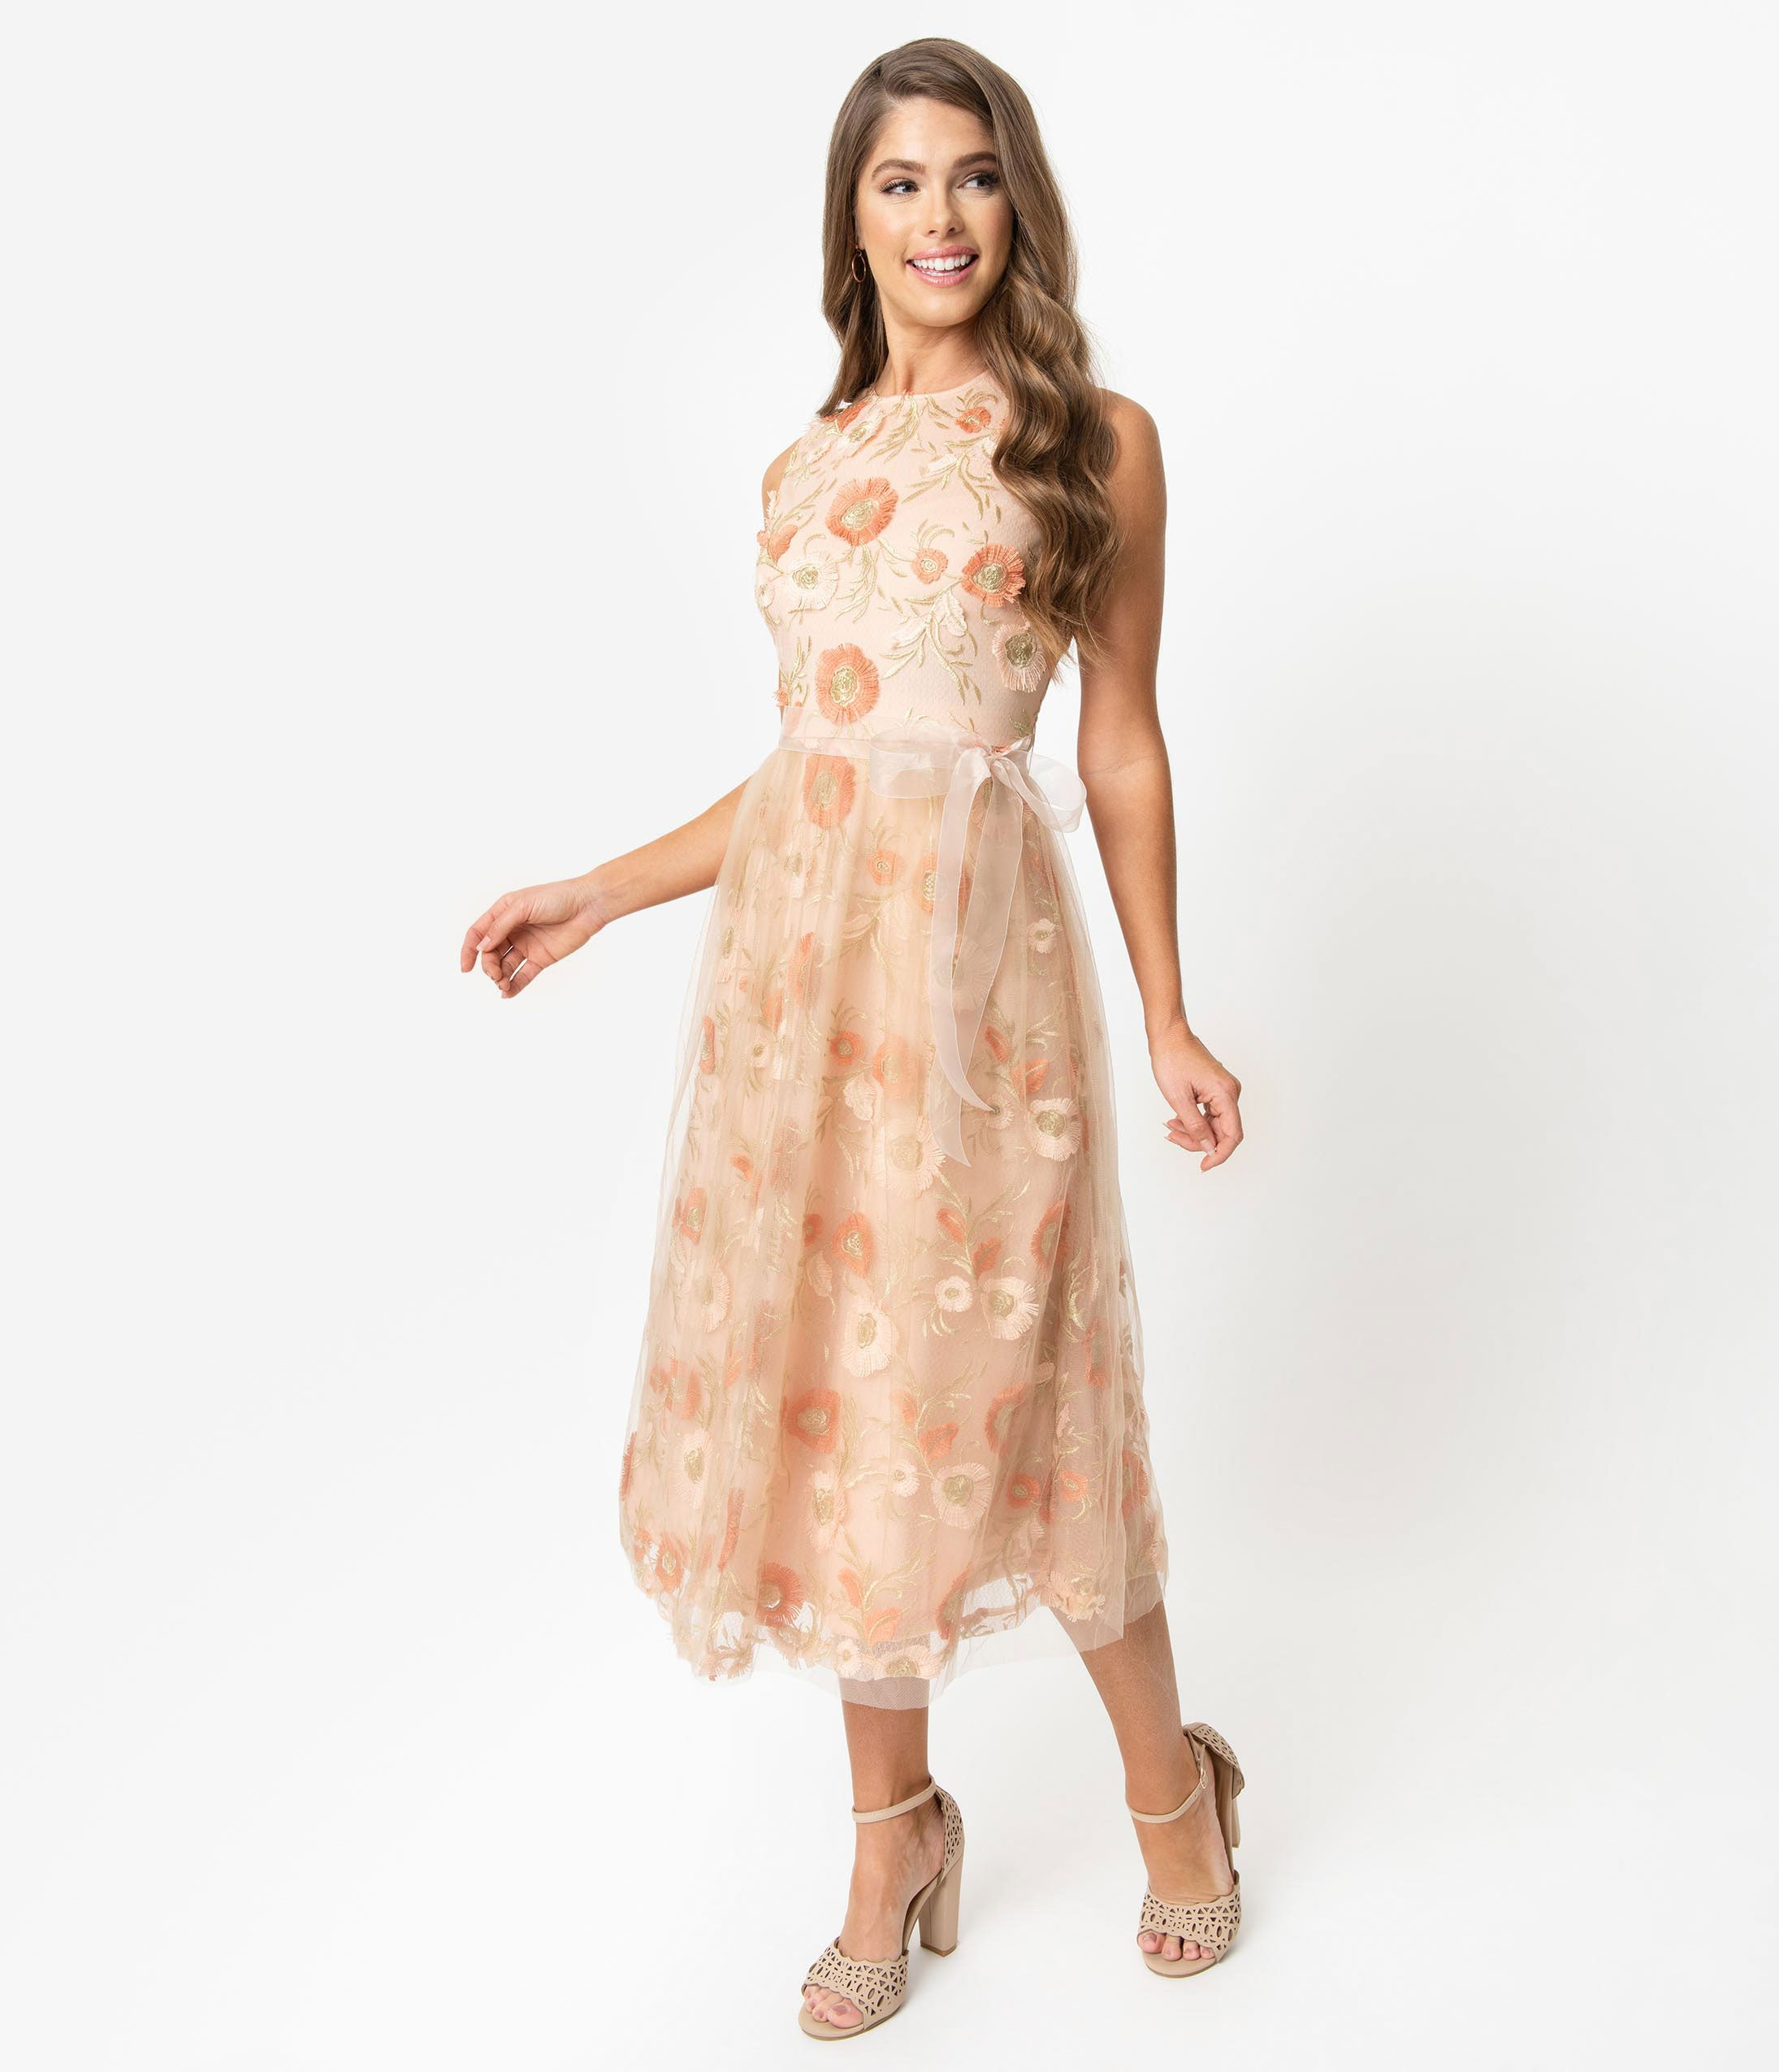 Vintage Evening Dresses and Formal Evening Gowns Vintage Style Peach  Gold Embroidered Floral Mesh Sleeveless Swing Dress $78.00 AT vintagedancer.com